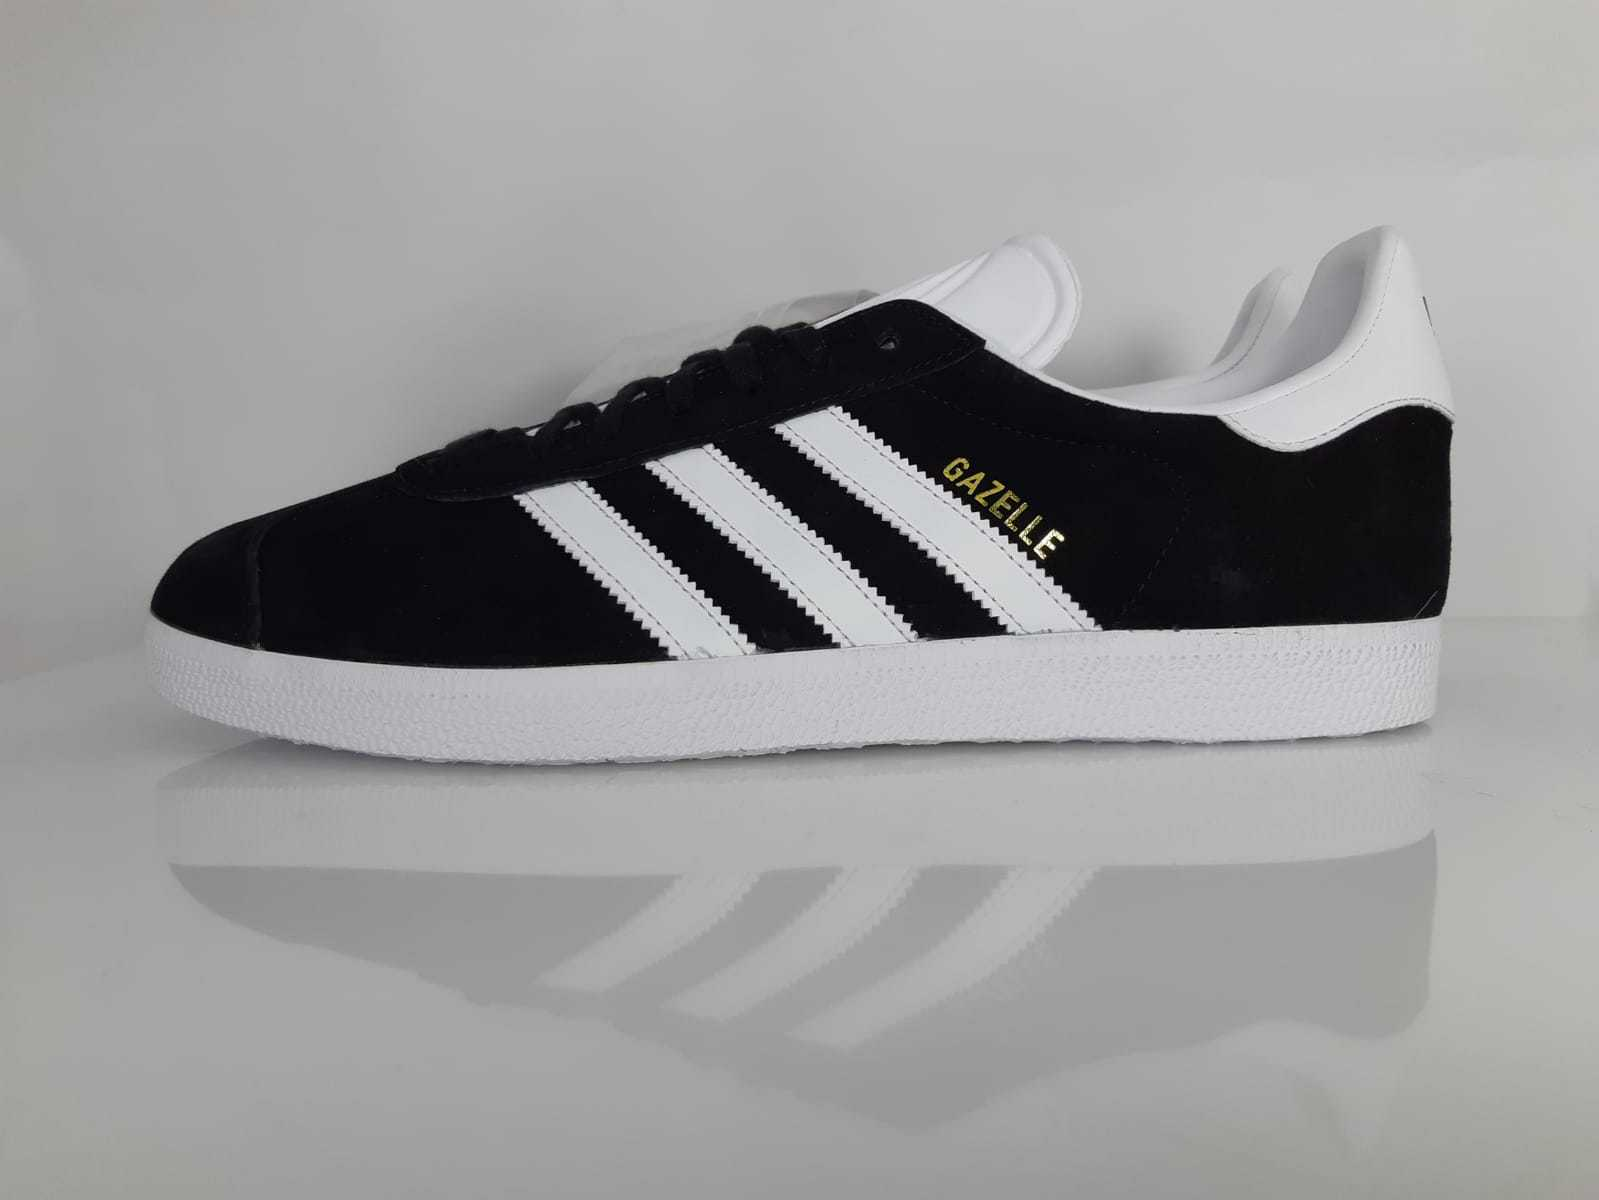 zapatos N. 45 1 3  2 CM 28 ADIDAS GAZELLE ART. BB5476